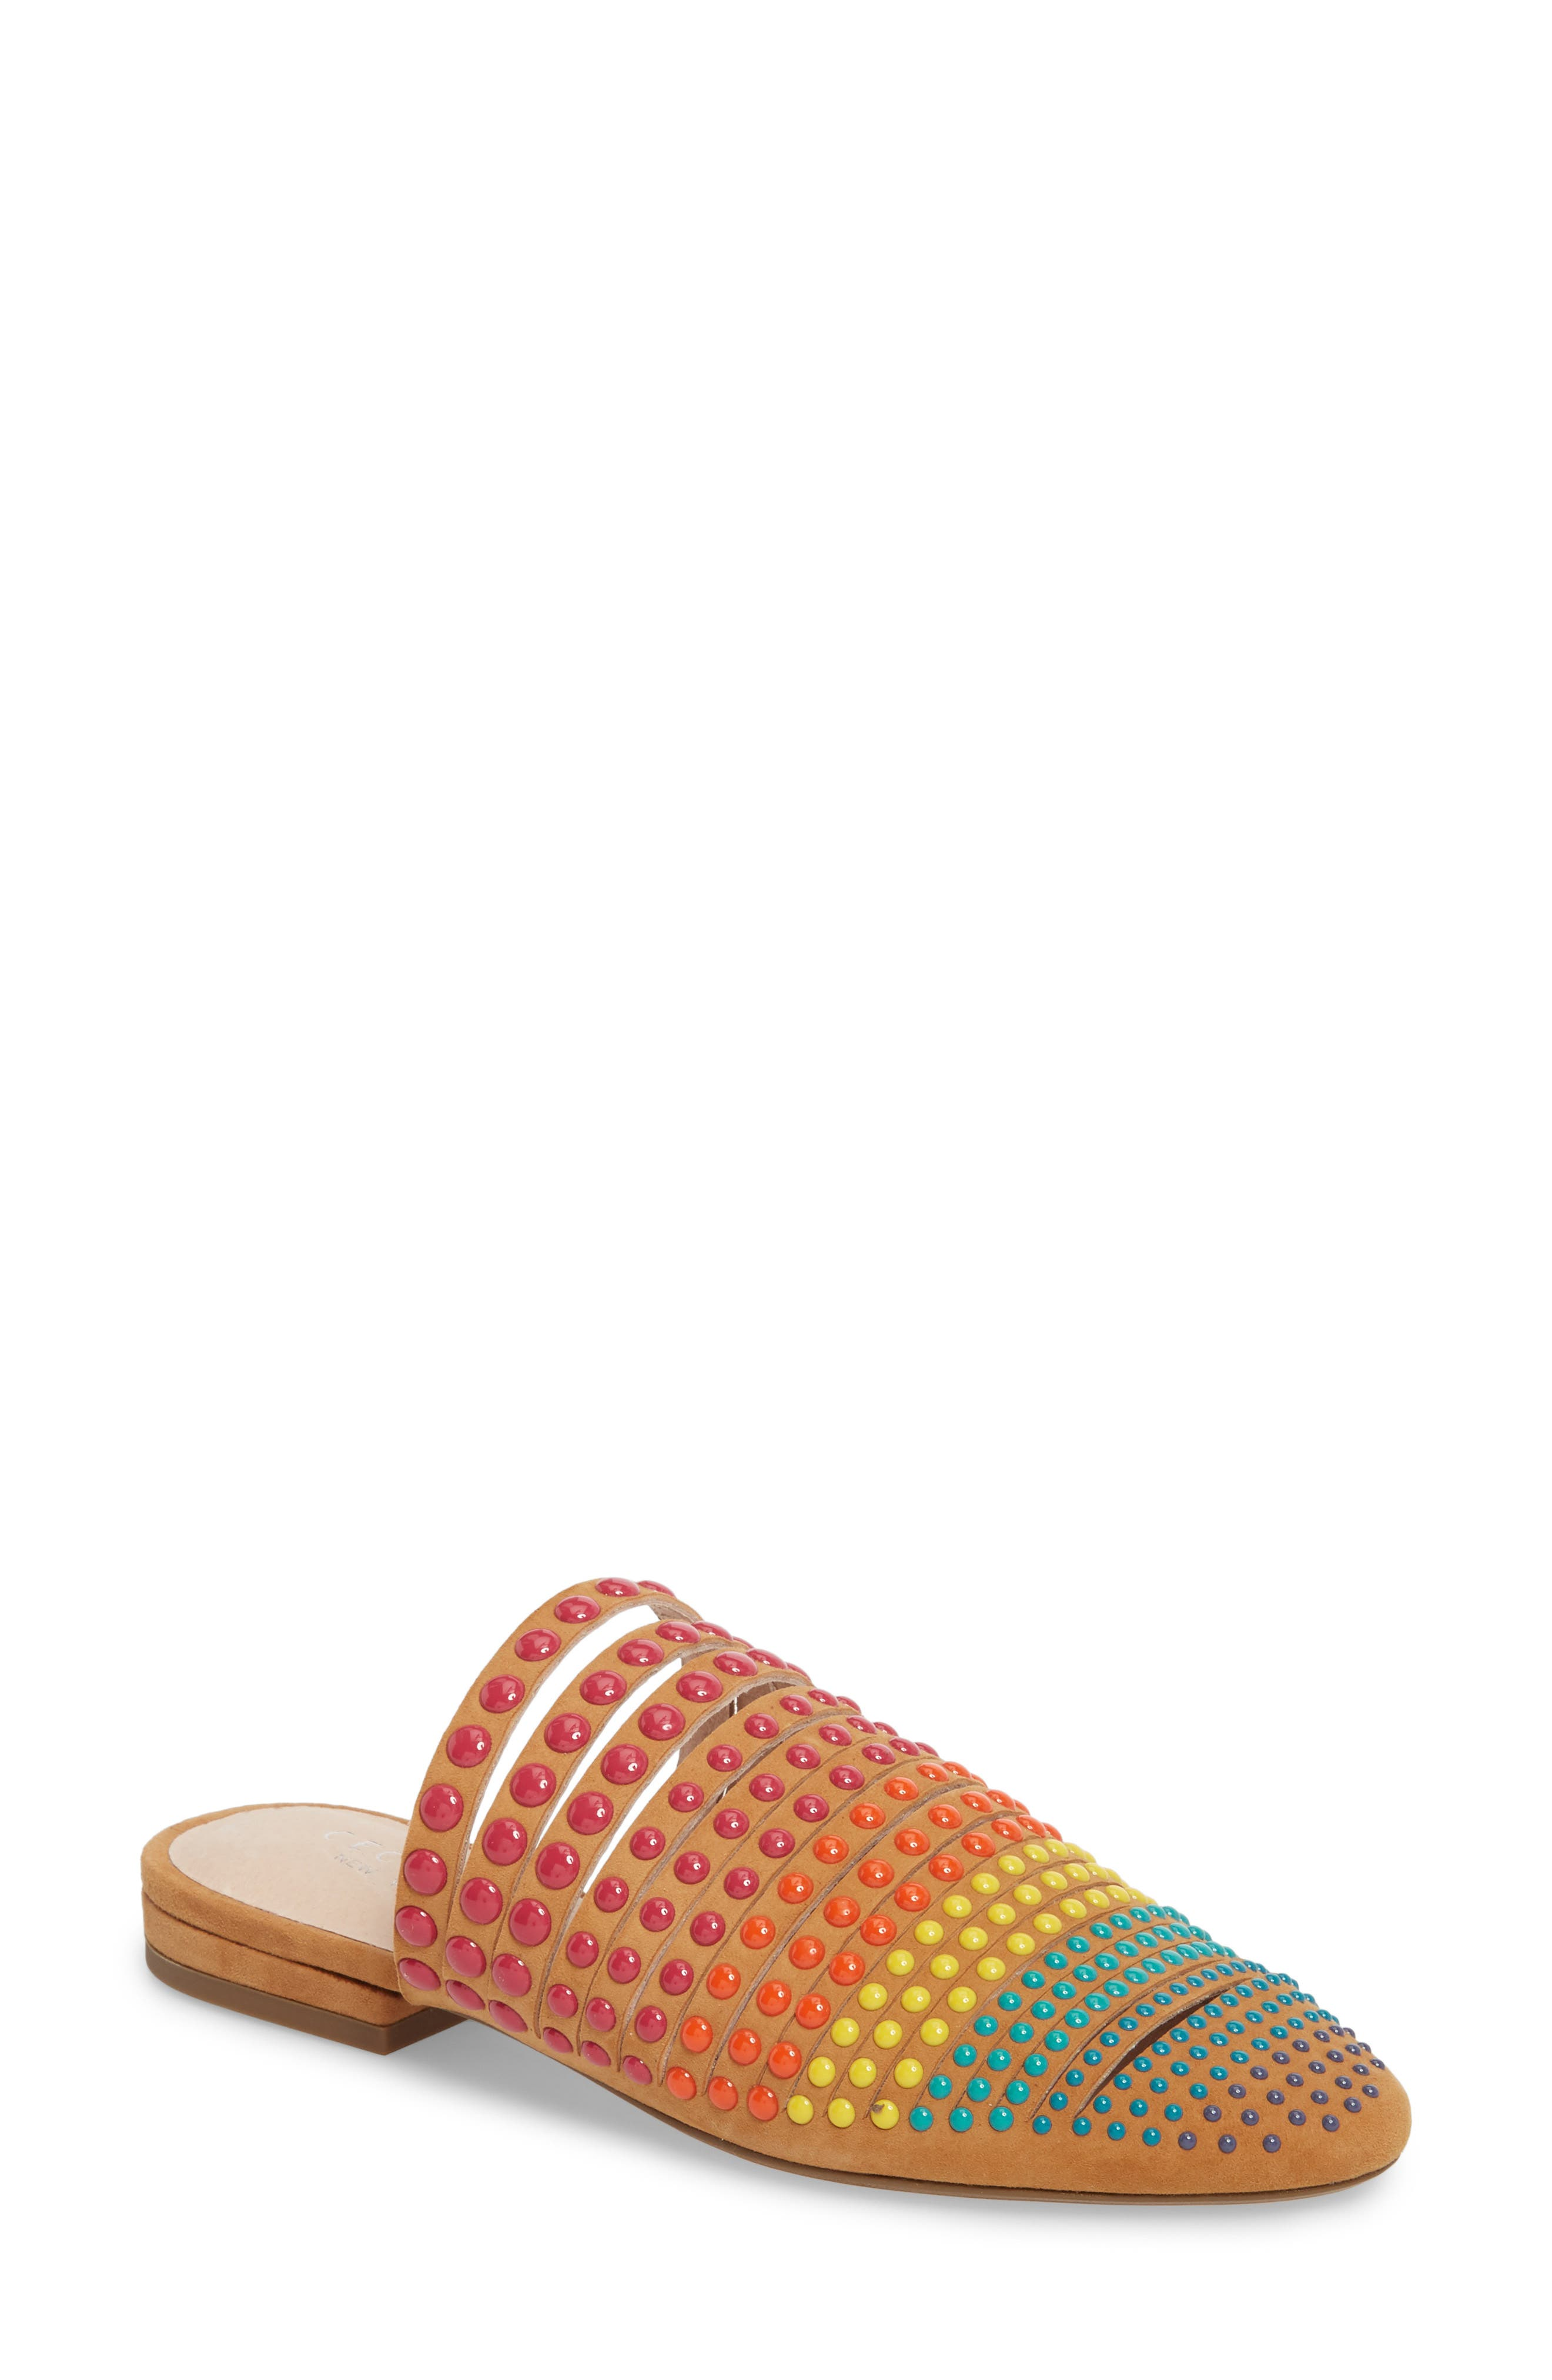 Potz Embellished Slide,                             Main thumbnail 1, color,                             Tan Print Suede